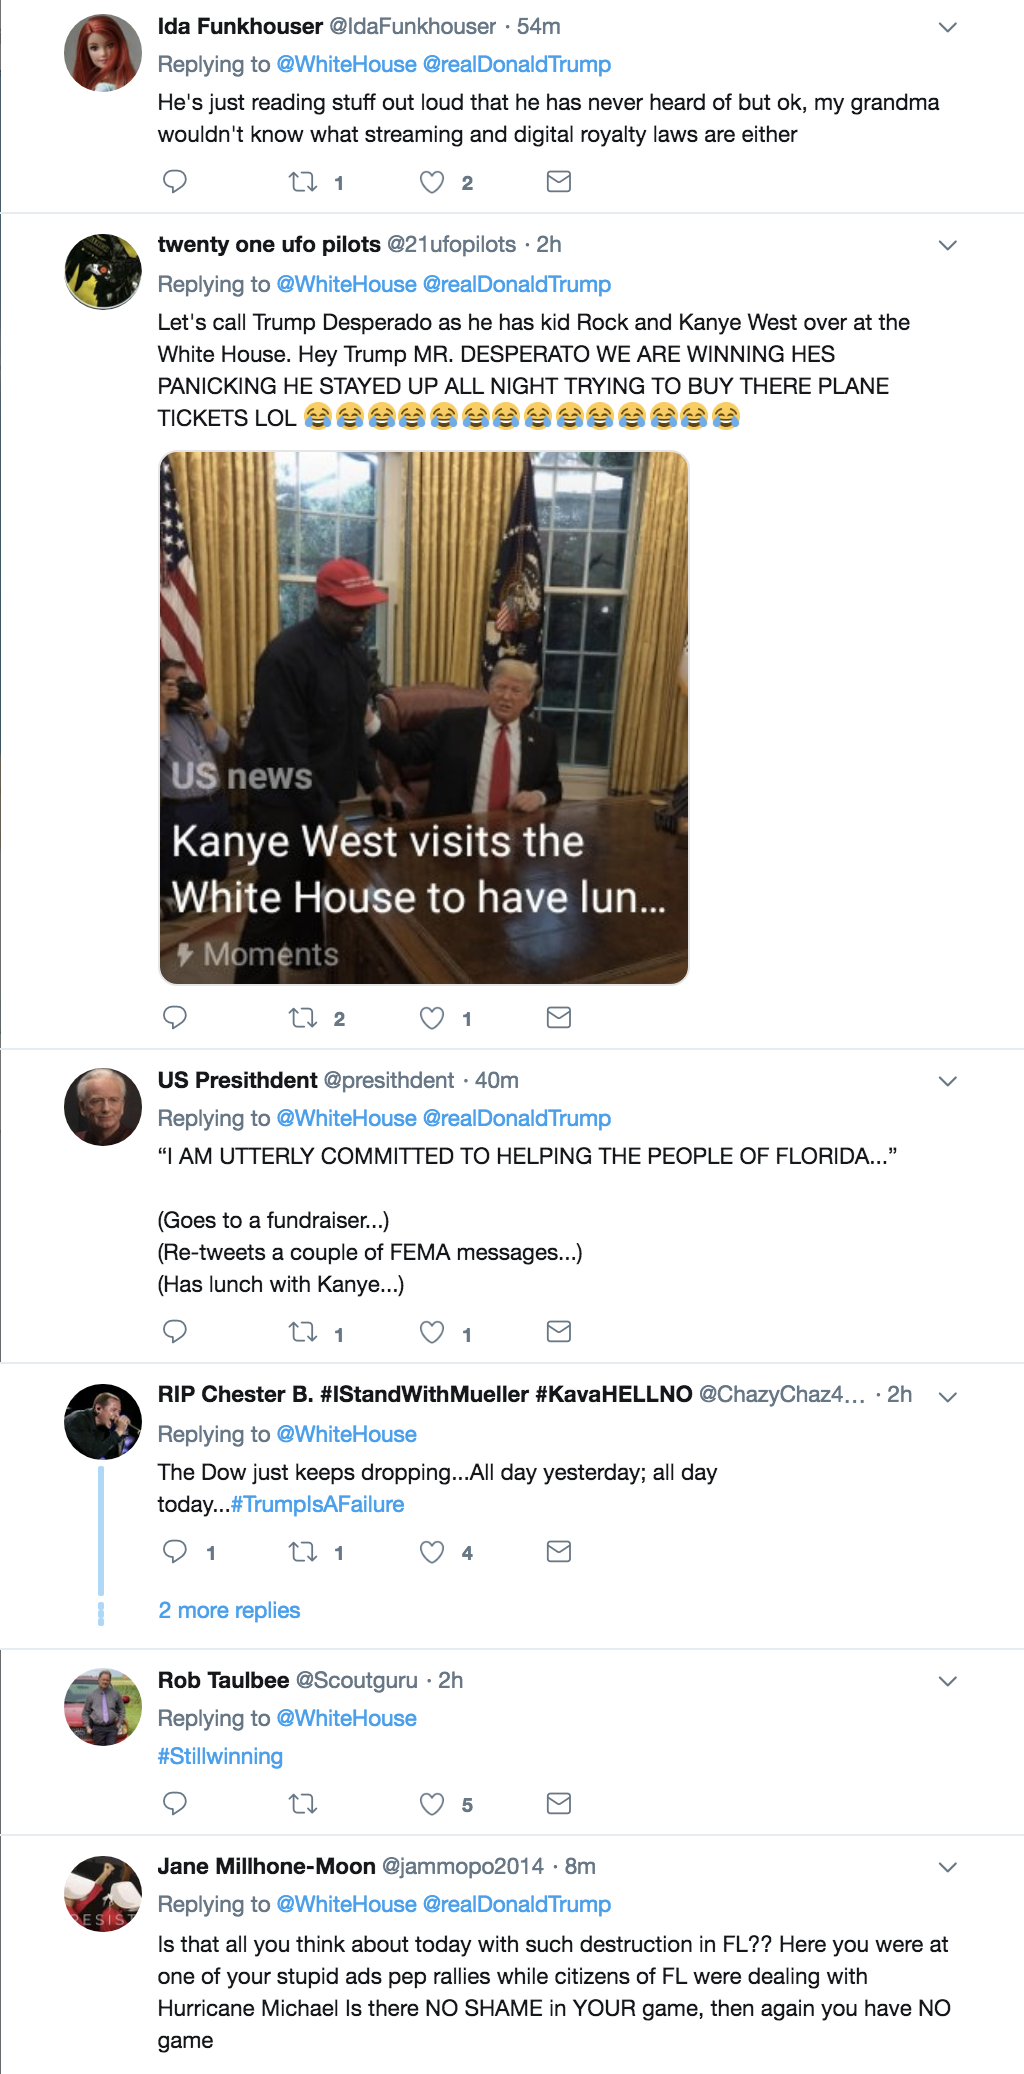 Screen-Shot-2018-10-11-at-3.17.29-PM Trump Tweets Video About Signing Law To Protect Musicians & Gets Eaten Alive Donald Trump Economy Hollywood Music Politics Television Top Stories Videos